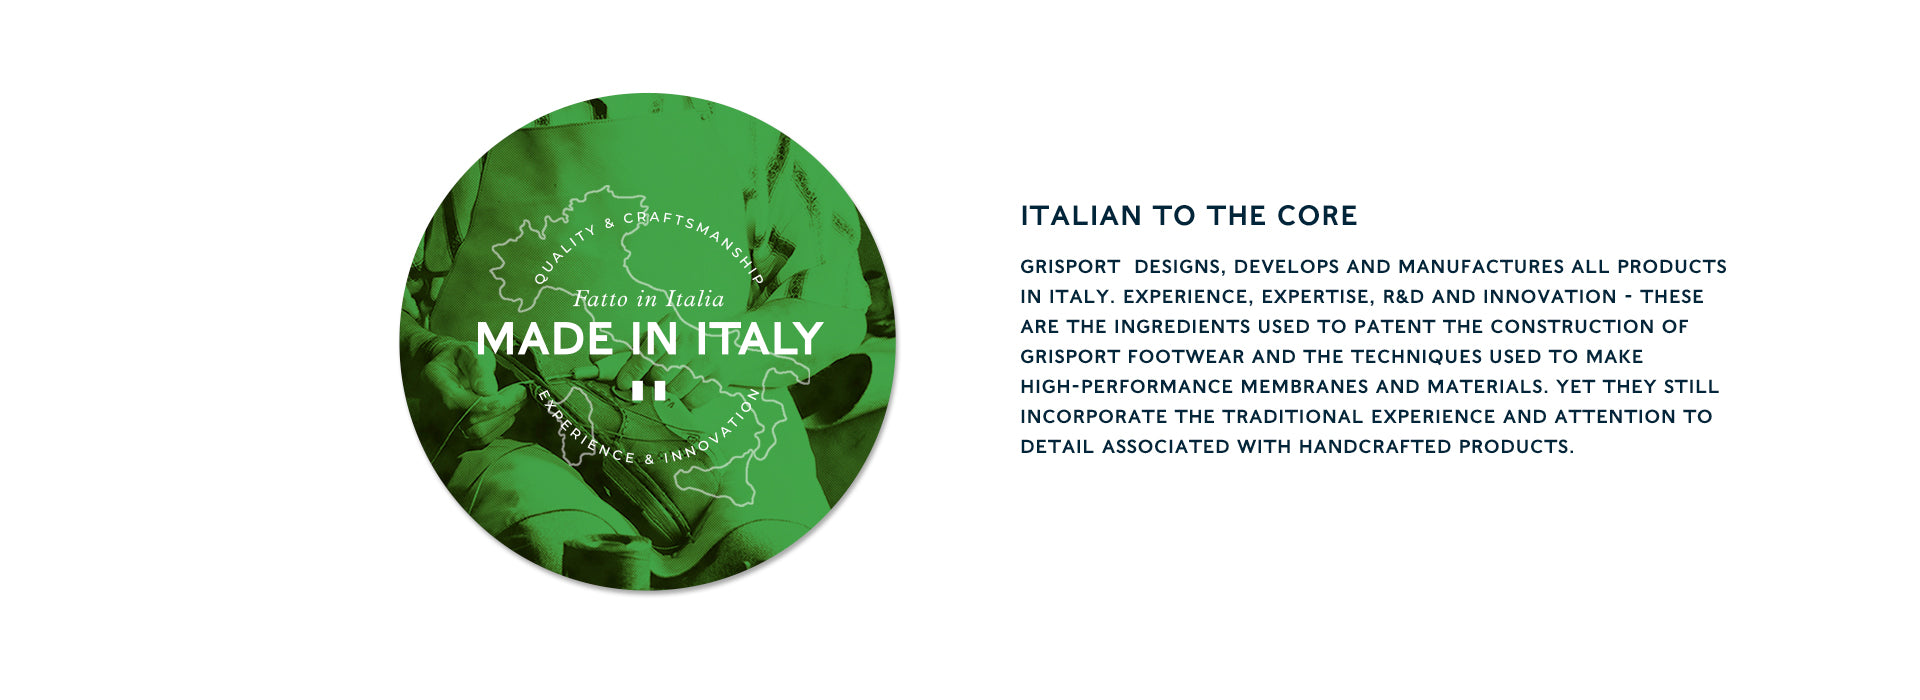 Italian to the core GRISPORT  designs, develops and manufactures all products in Italy. Experience, expertise, R&D and innovation - these are the ingredients used to patent the construction of Grisport footwear and the techniques used to make high-performance membranes and materials. Yet they still incorporate the traditional experience and attention to detail associated with handcrafted products.